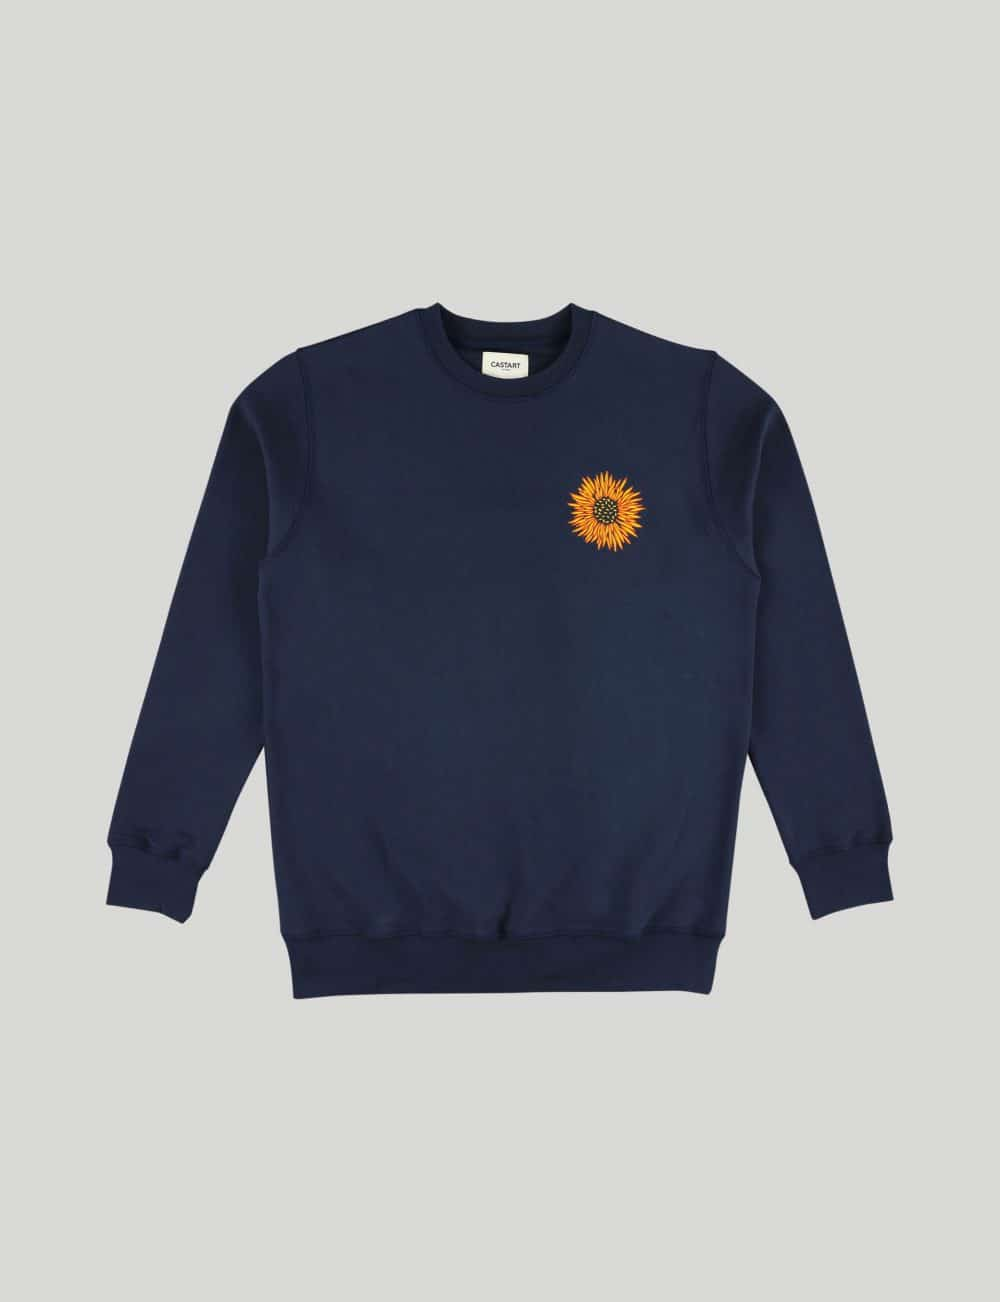 Castart - Mari Posa Sweater - Navy